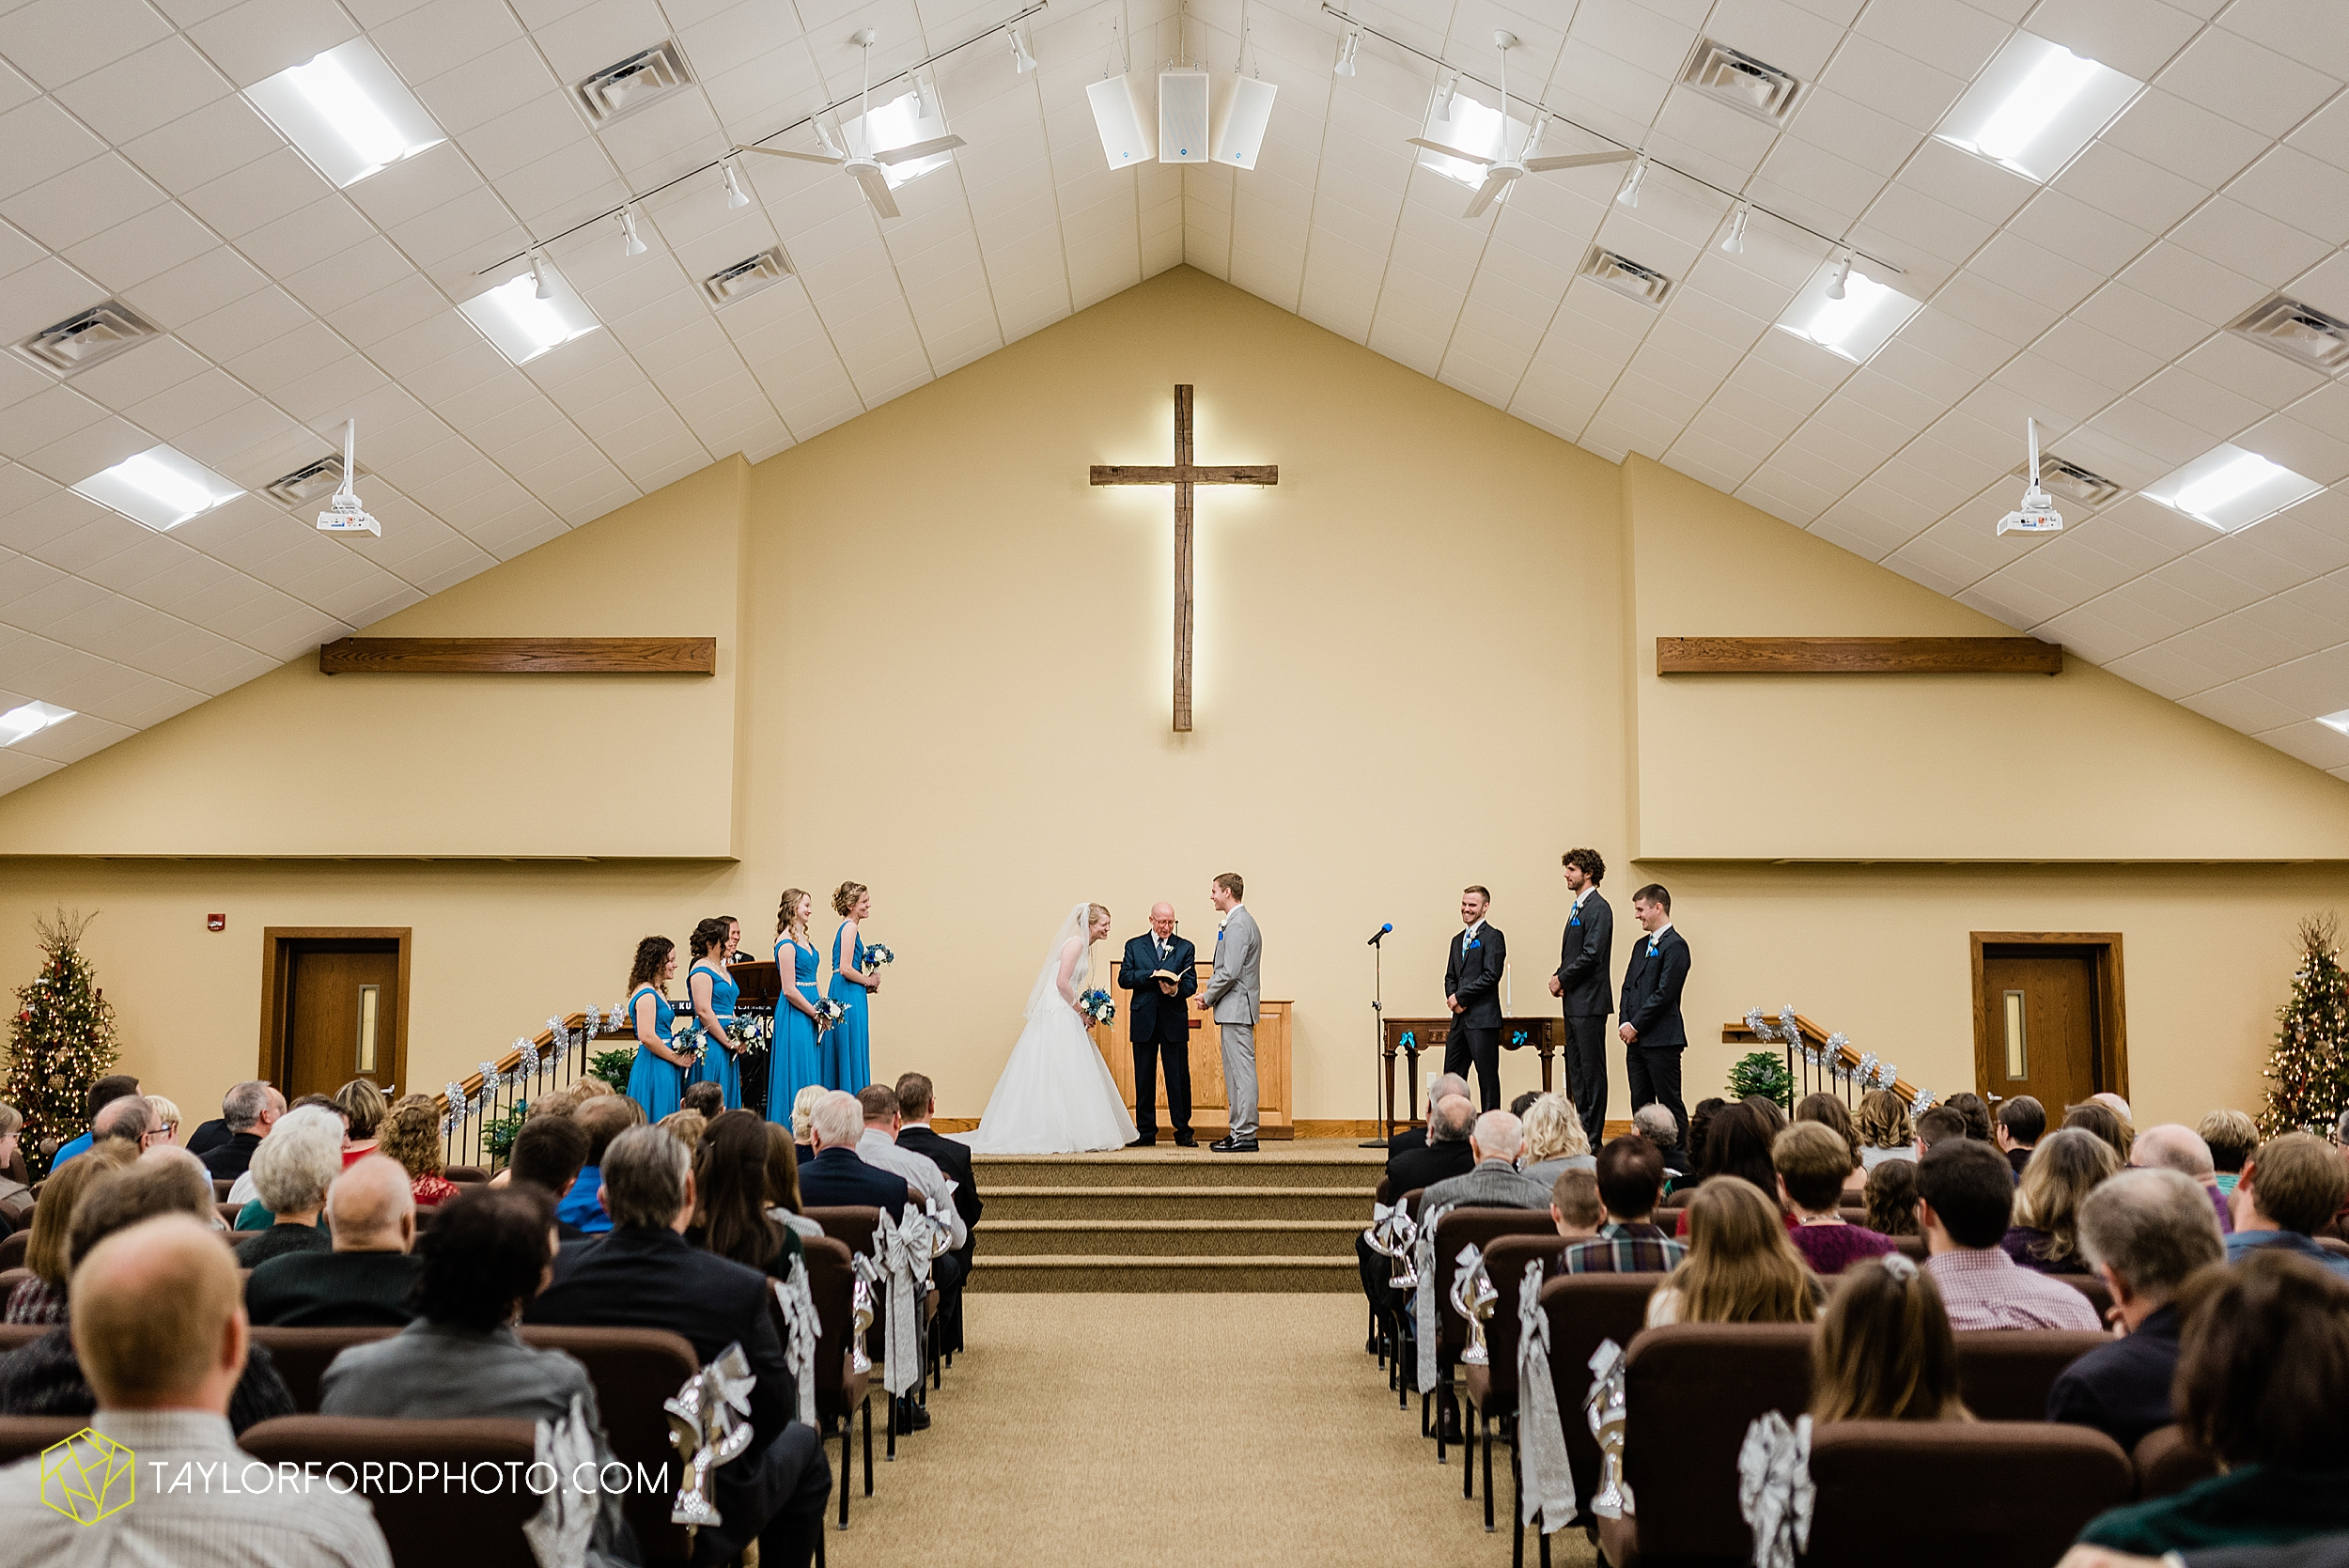 pleasant-view-church-christmas-celina-fraternal-order-of-eagles-reception-wedding-wren-willshire-van-wert-ohio-photography-taylor-ford-hirschy-photographer_2151.jpg